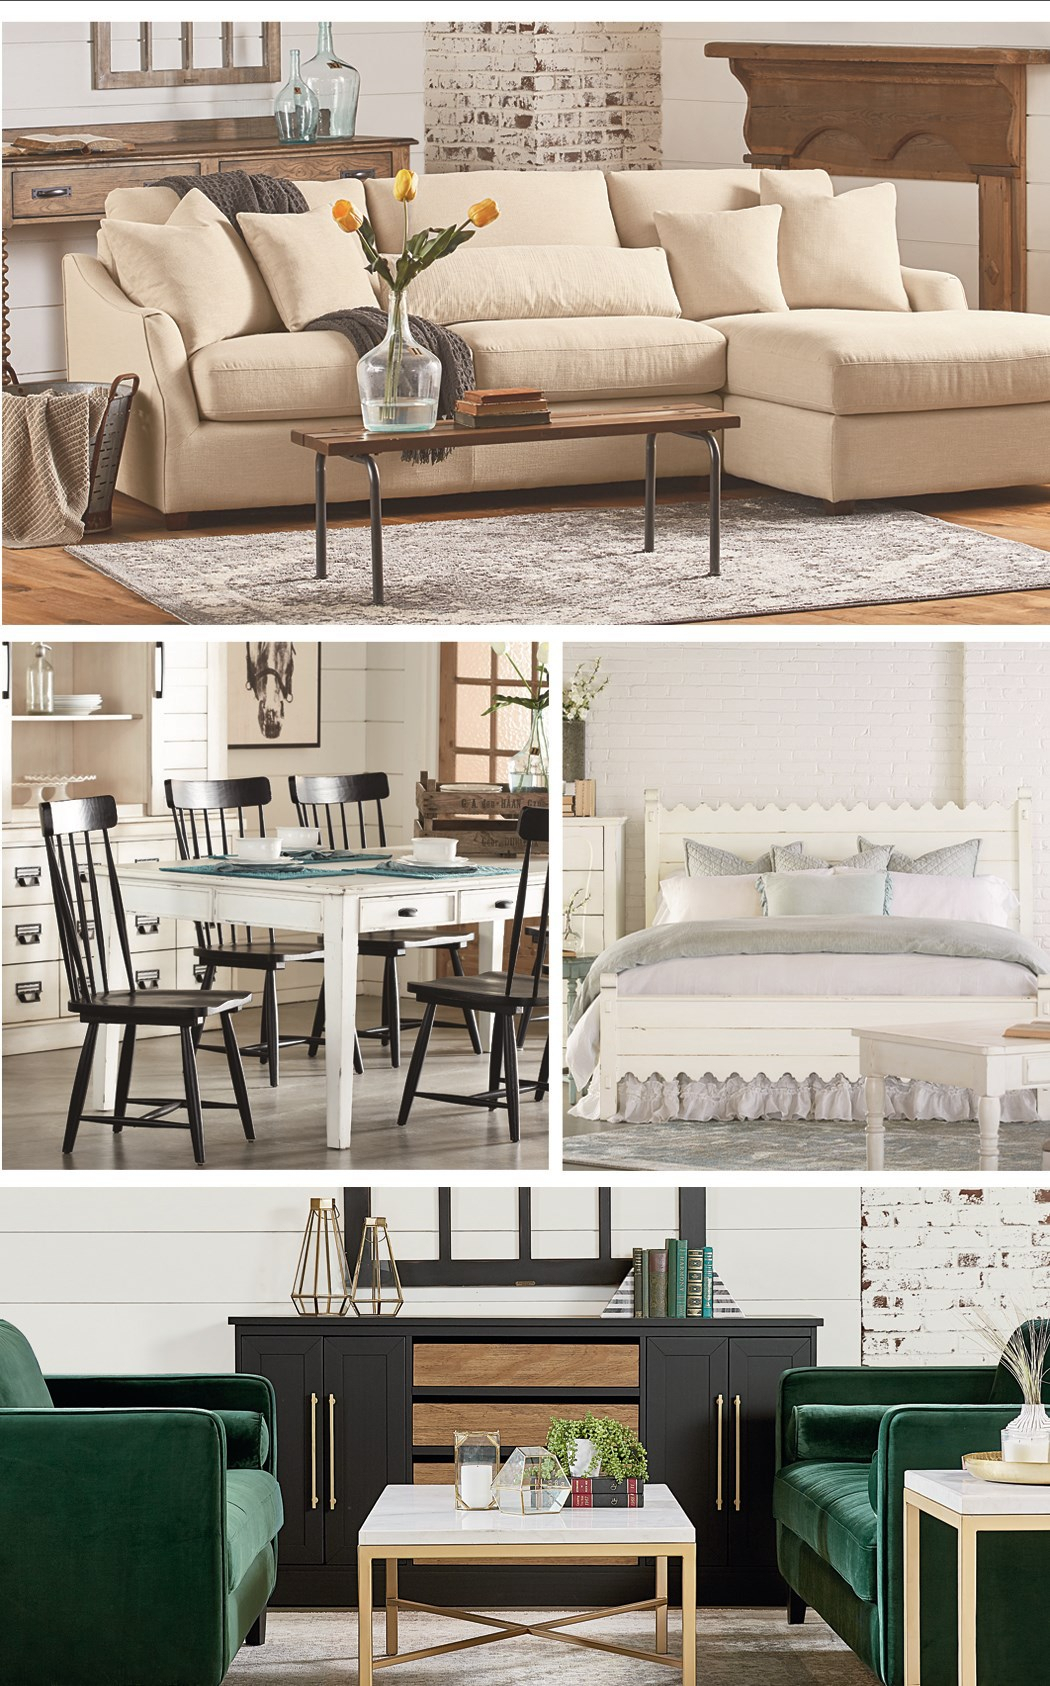 Magnolia Homejoanna Gaines | Jacksonville, Gainesville, Palm With Regard To Magnolia Home Homestead Sofa Chairs By Joanna Gaines (View 5 of 25)